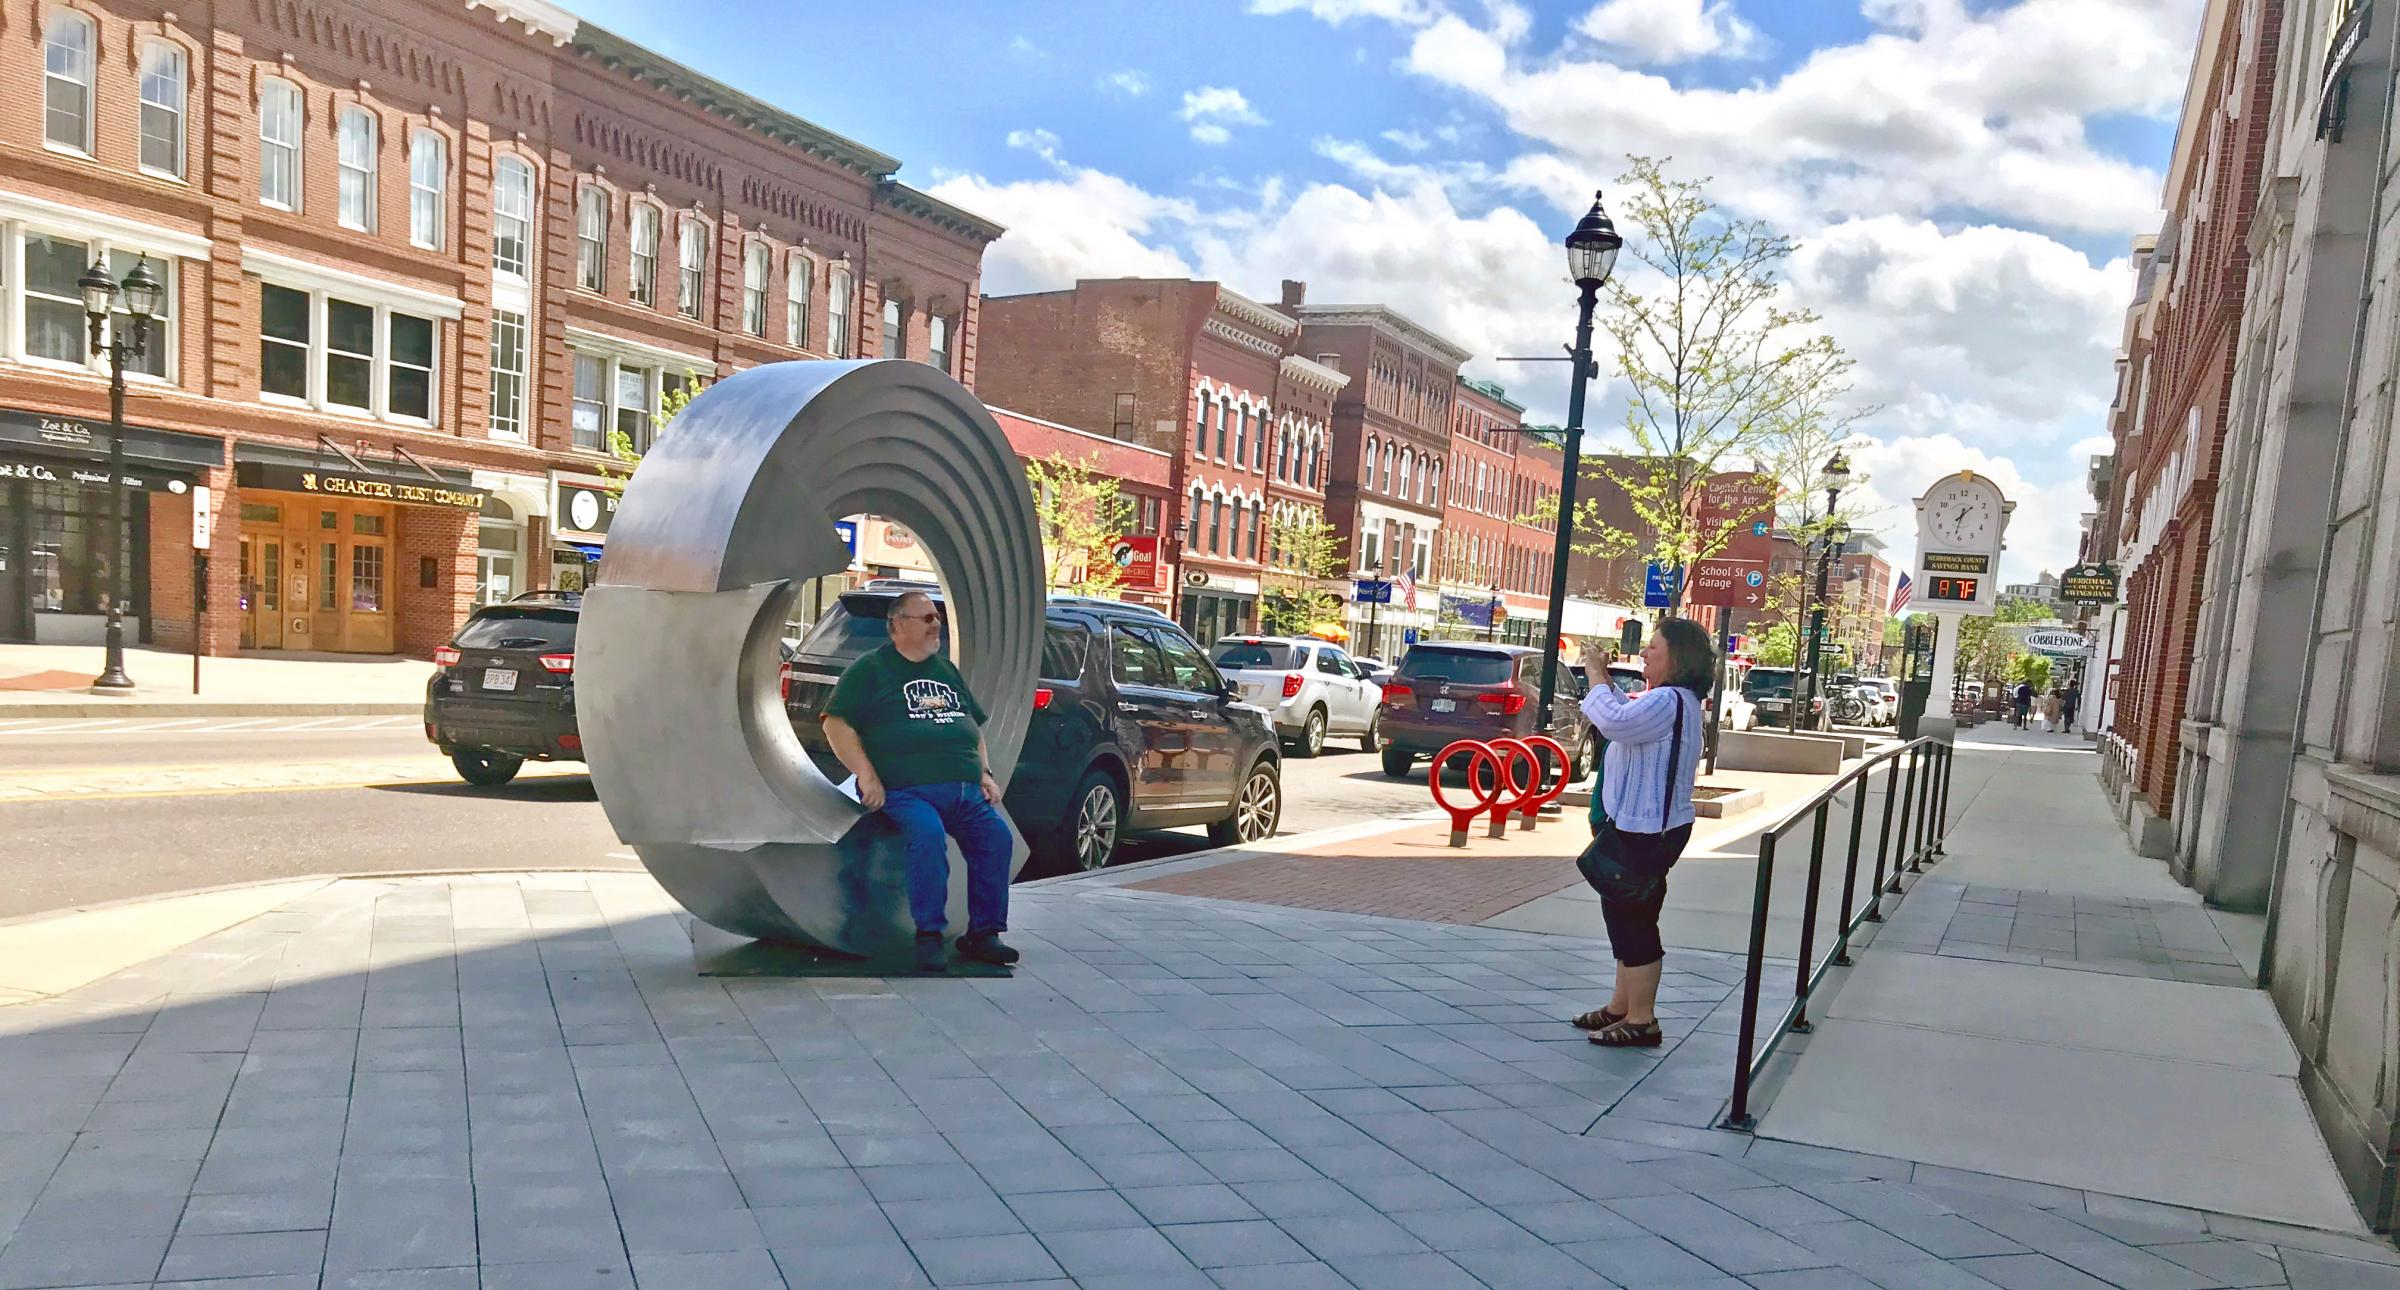 The City of Concord, NH and the Greater Concord Chamber of Commerce invite professional sculptors to submit entries for Art on Main, a public art exhibit in the city's historic downtown.